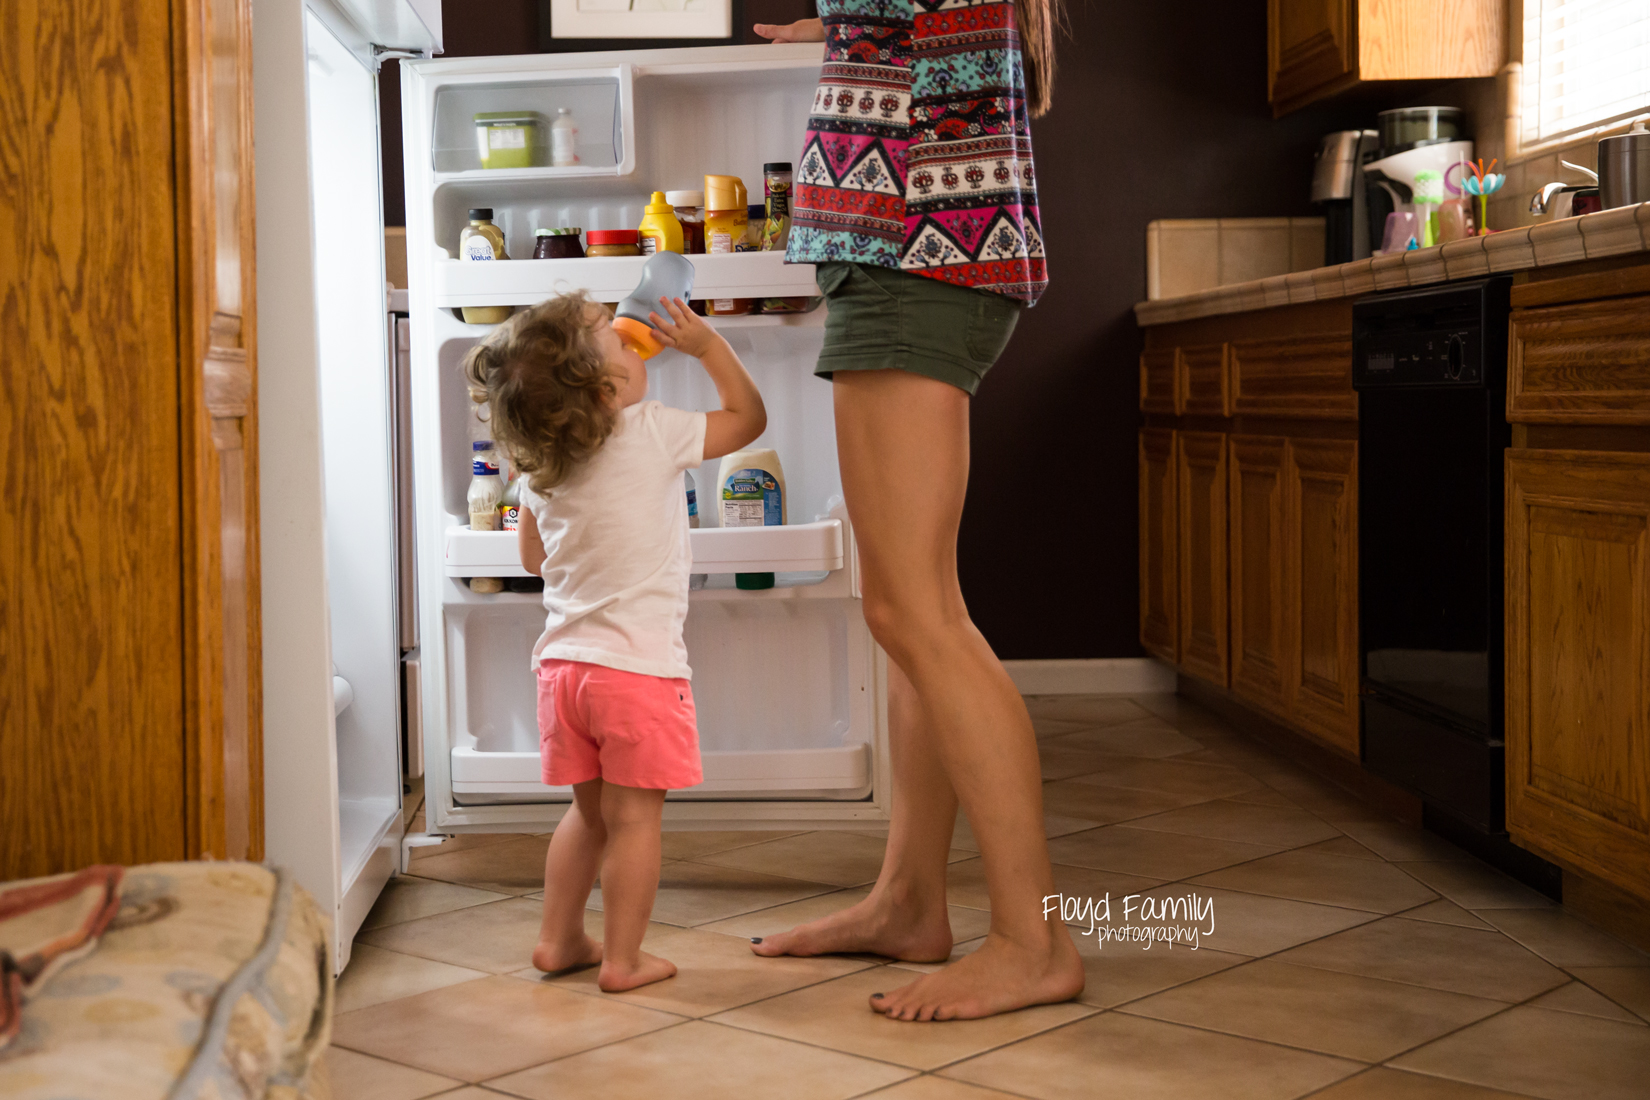 Little girl standing at open fridge with mom drinking milk